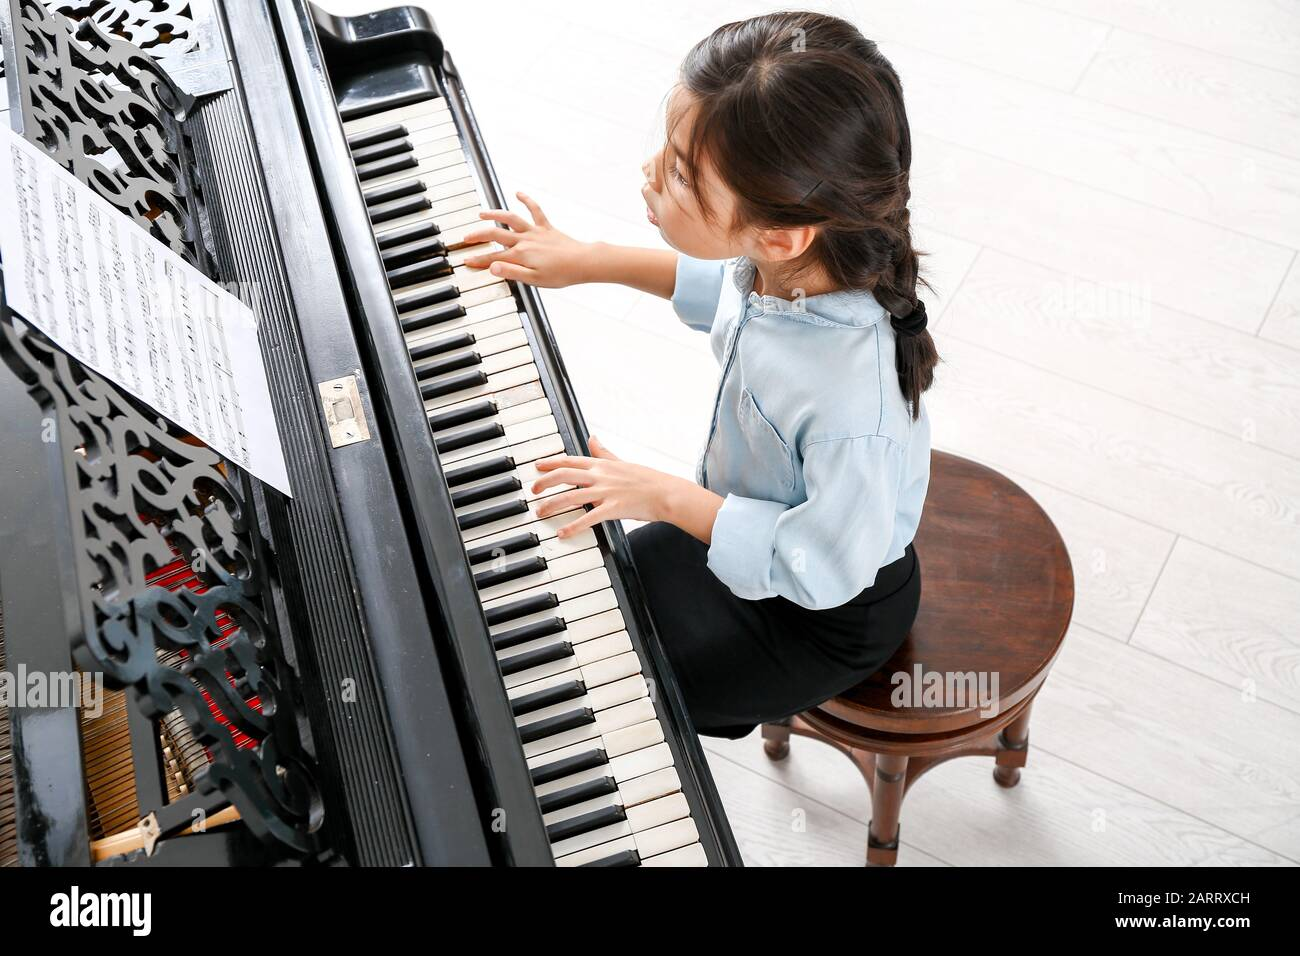 Lil Piano Player